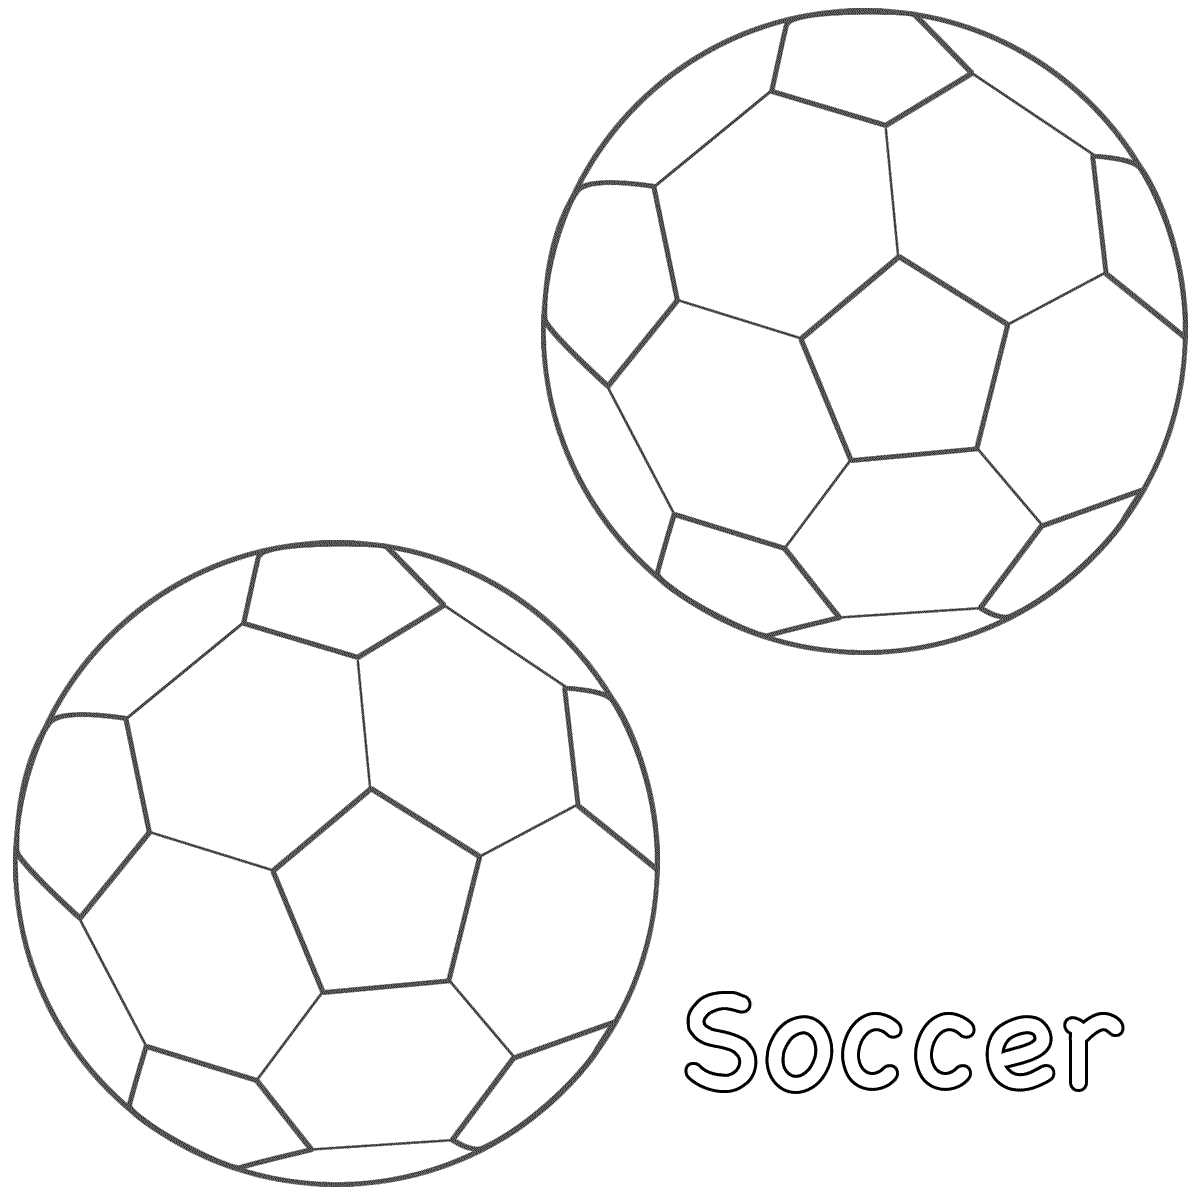 soccer ball coloring page soccer ball colouring clipart best soccer page ball coloring